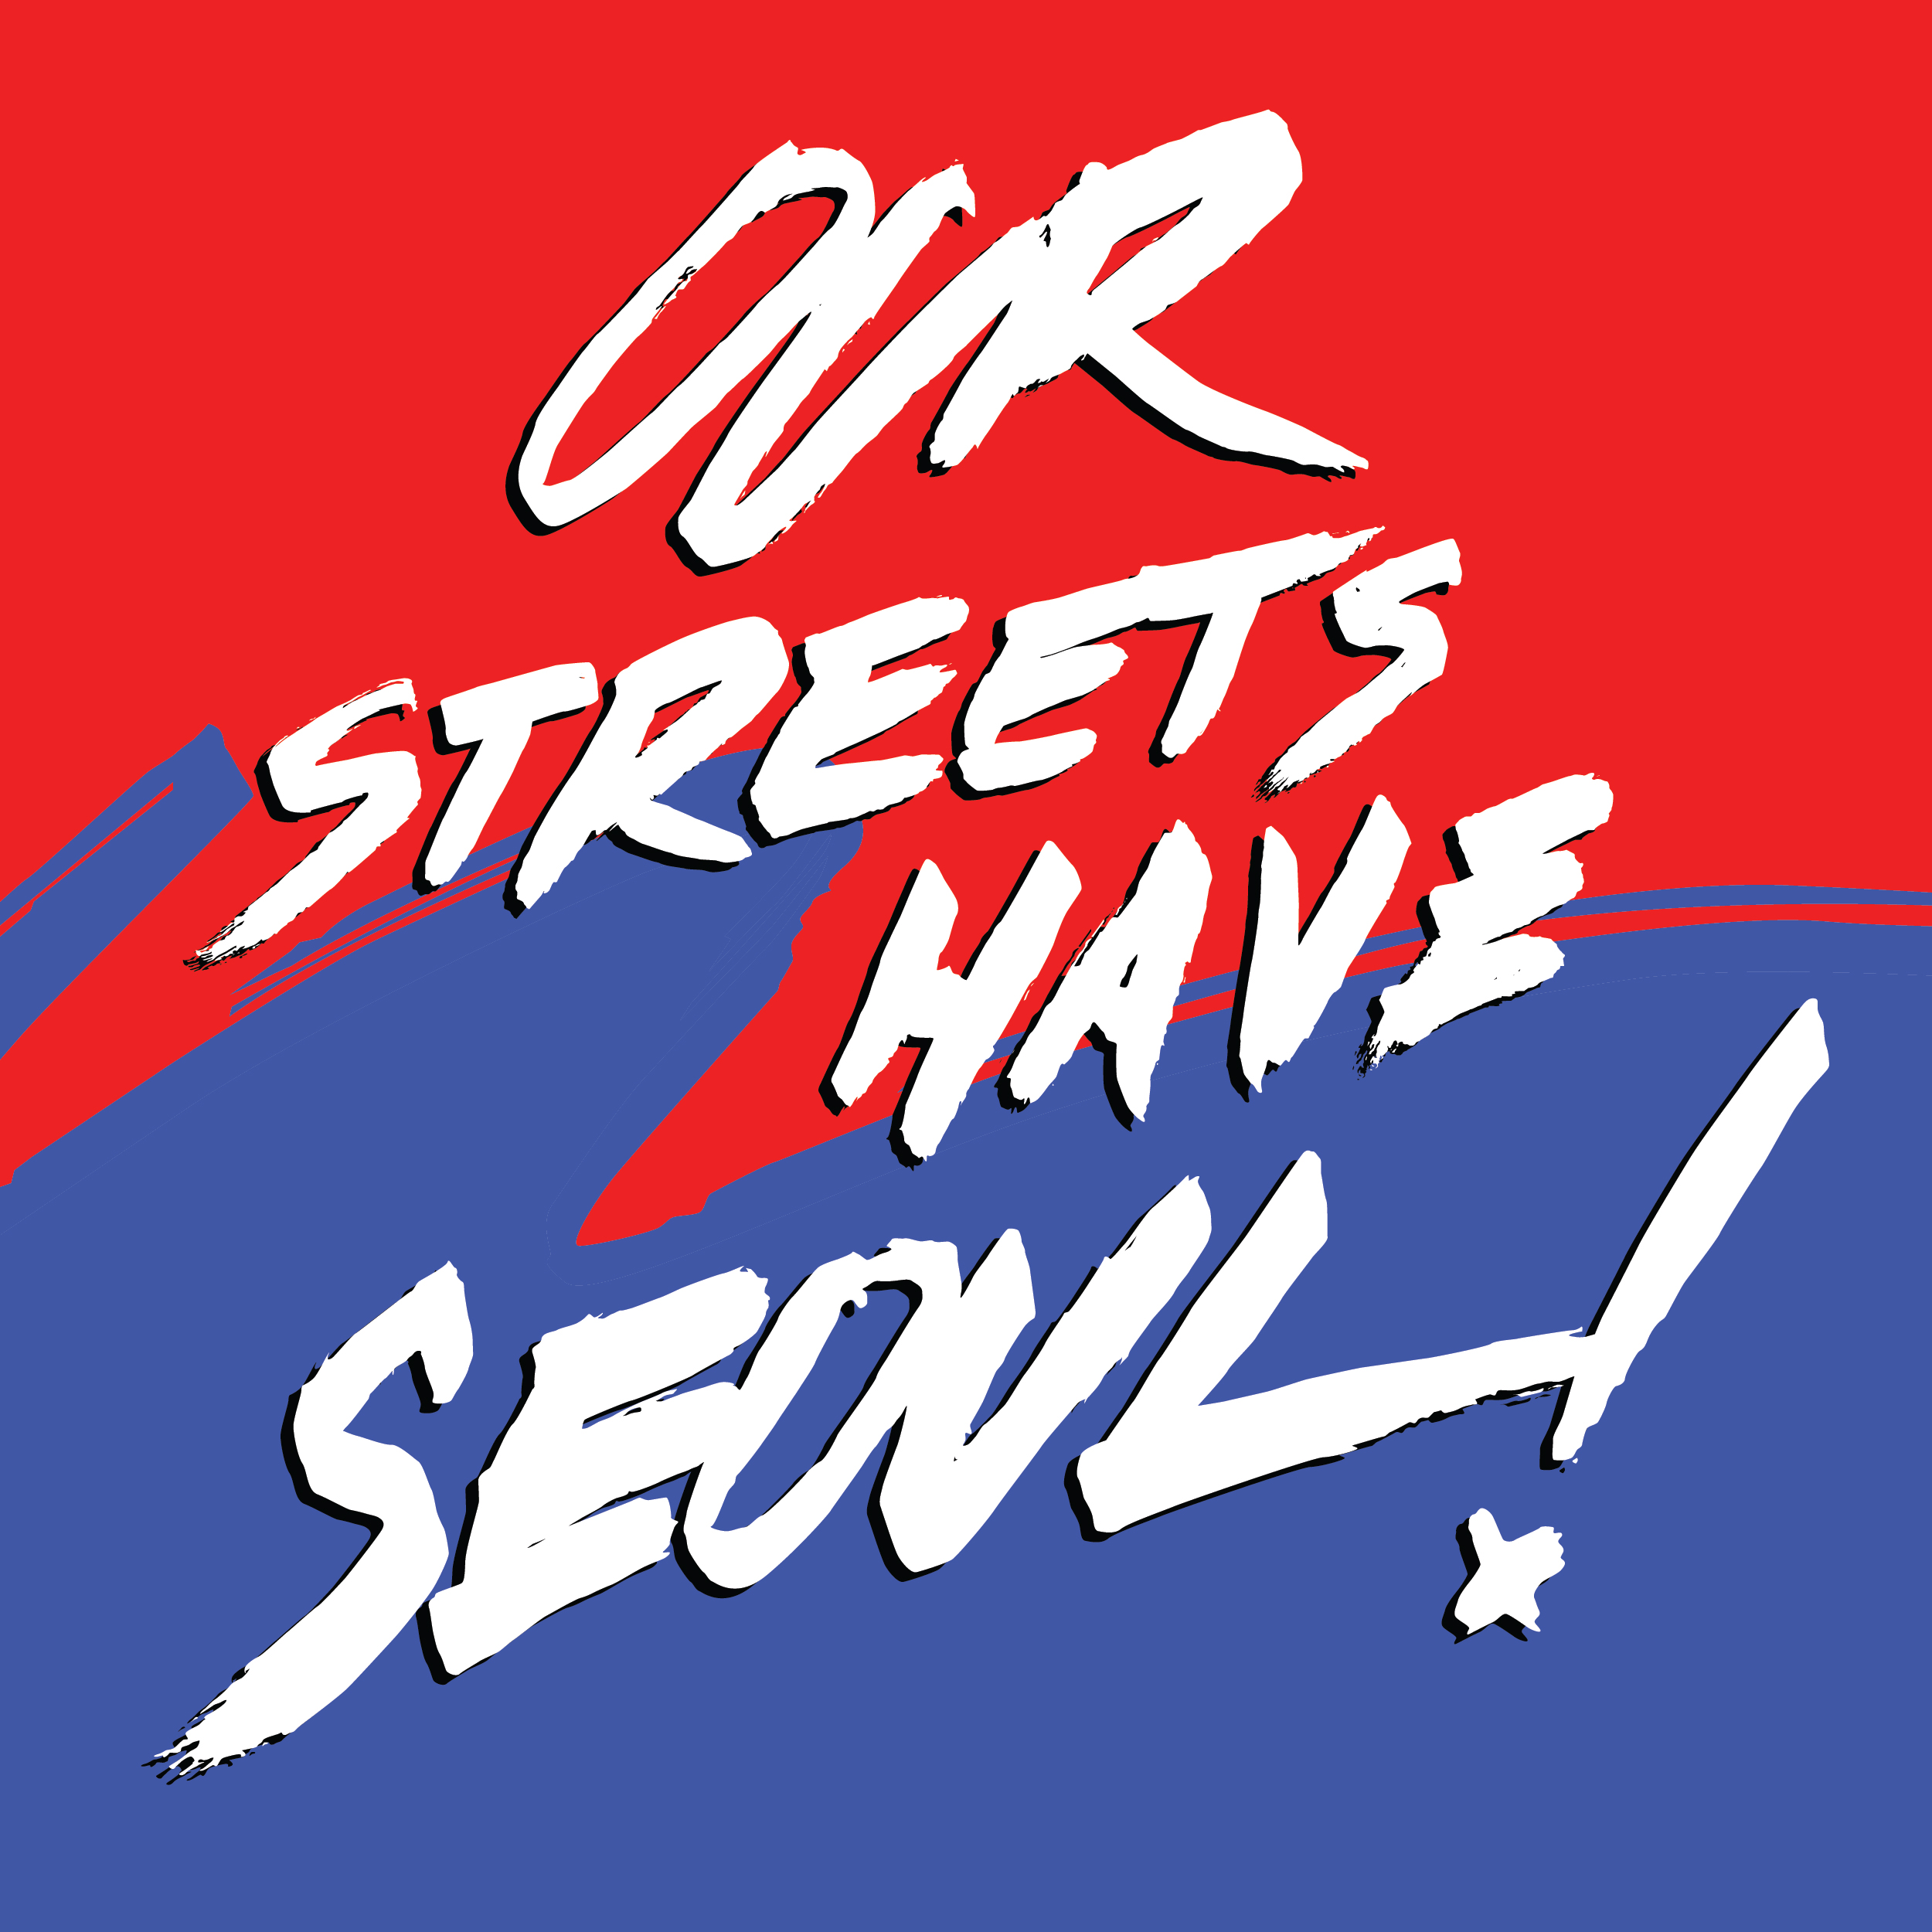 Seoul Typography Contest - Ramesh Weston